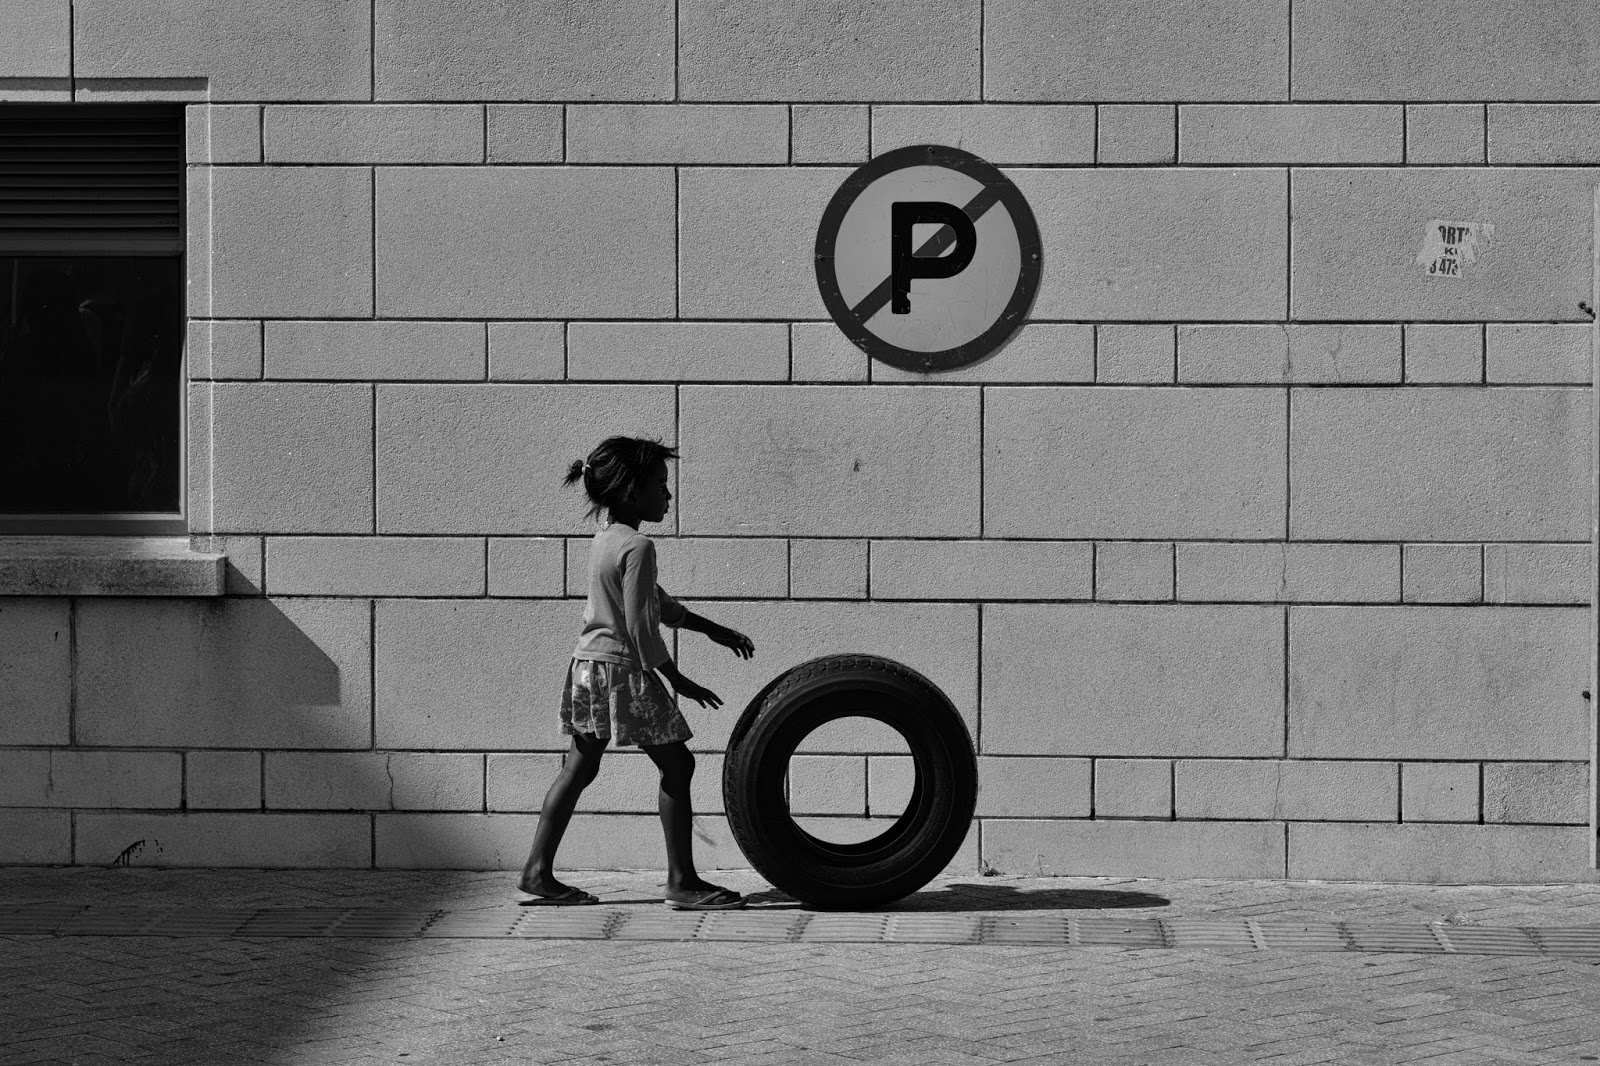 A girl pushes a tyre past a no parking sign in this South African street photograph